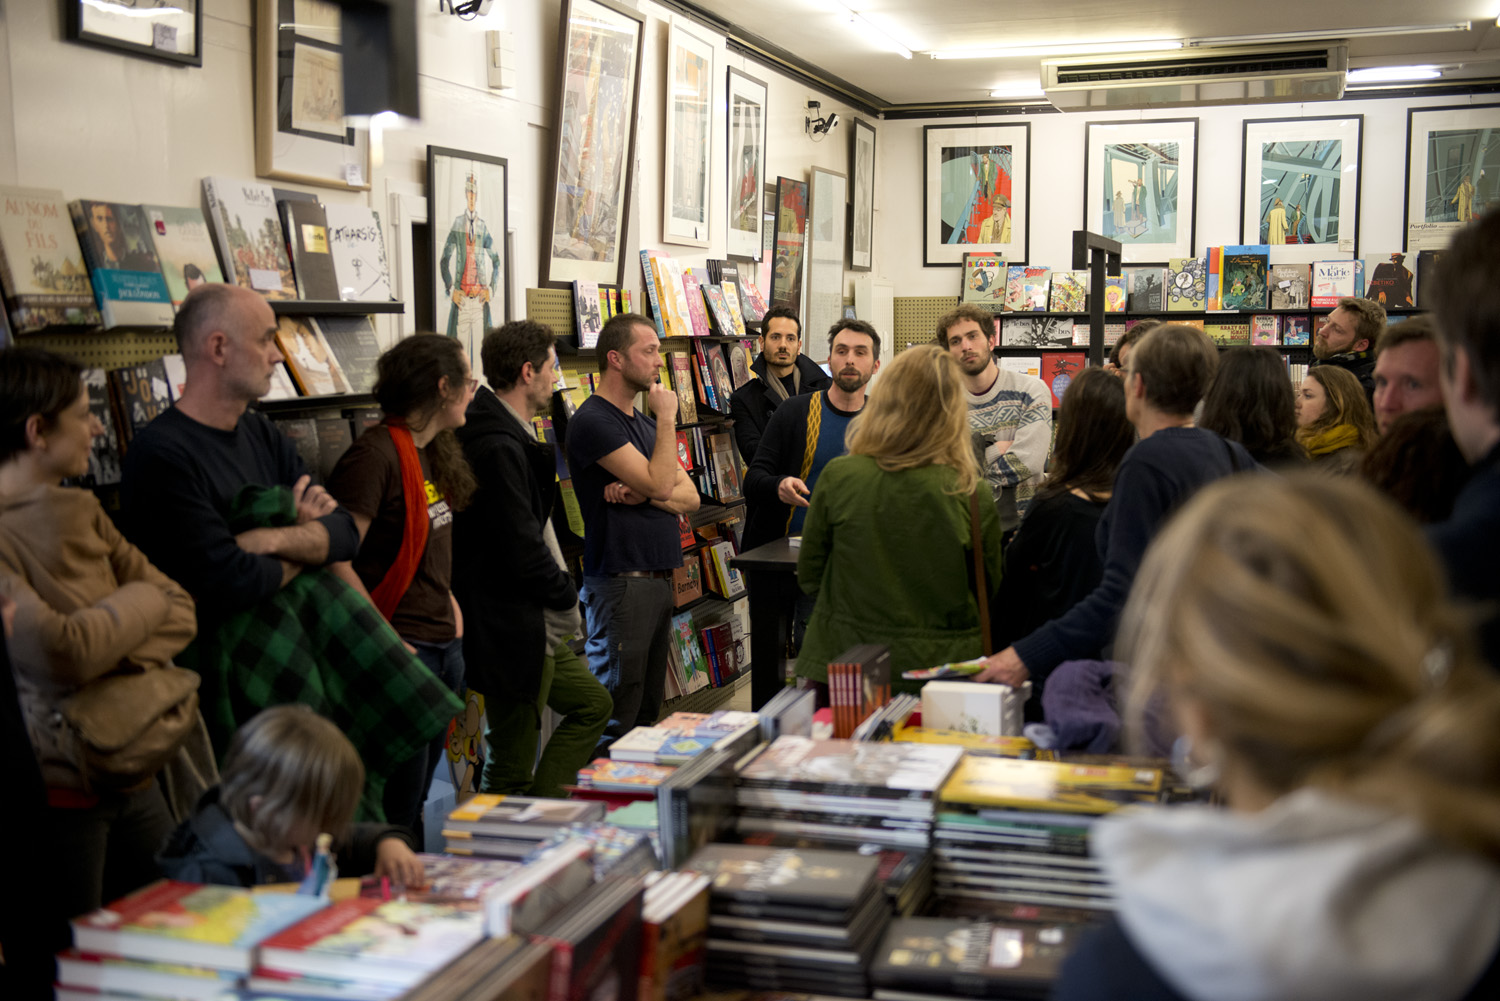 Médor Magazine Edition Launch in a Brussels bookshop in 2016